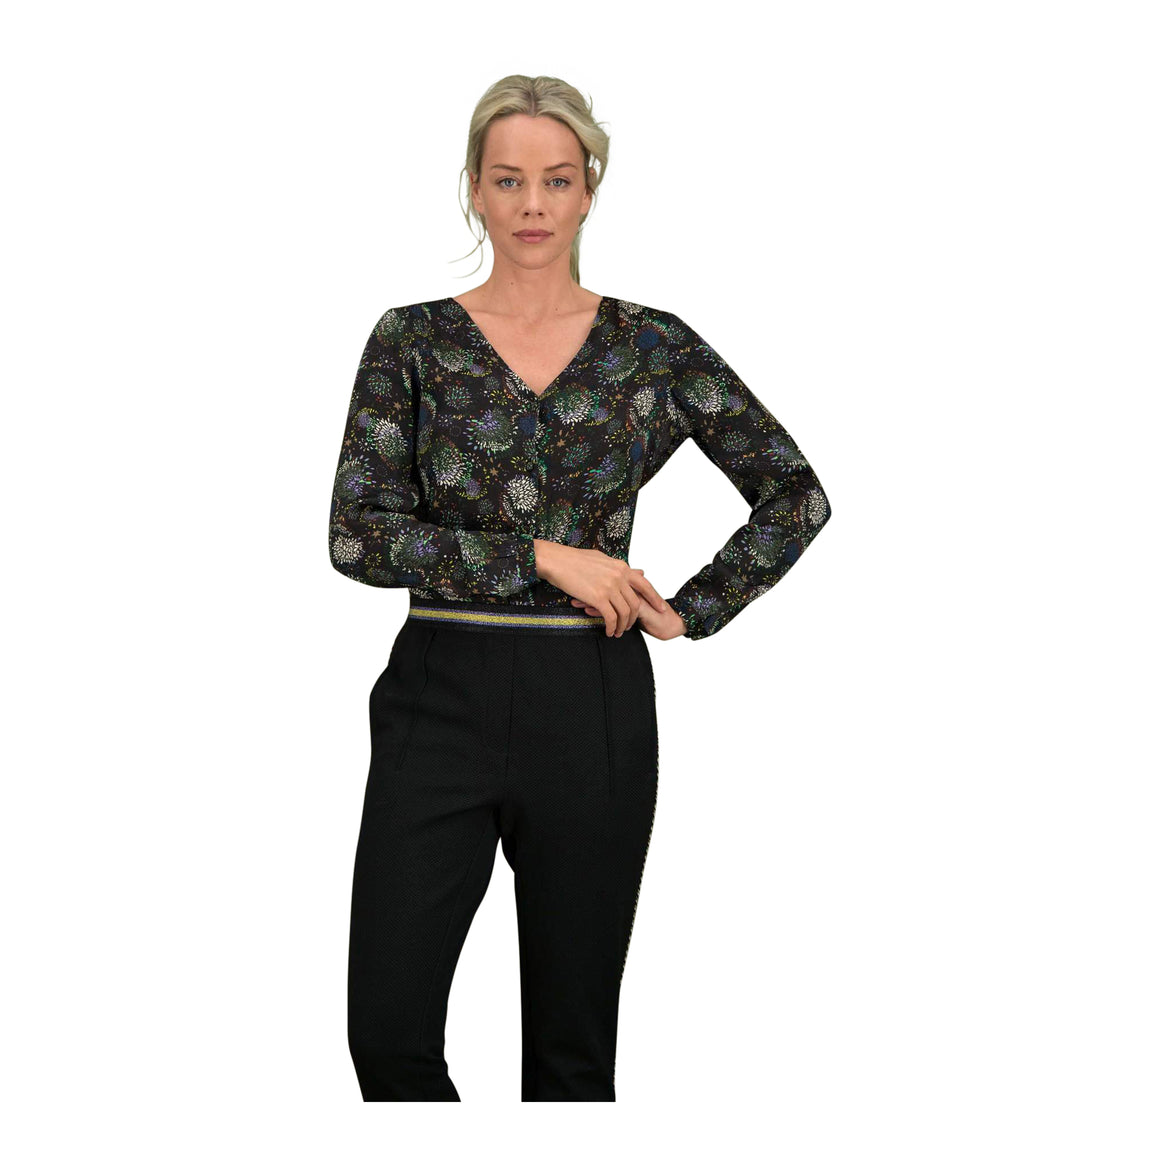 Blouse for Women in Sparky Fireworks